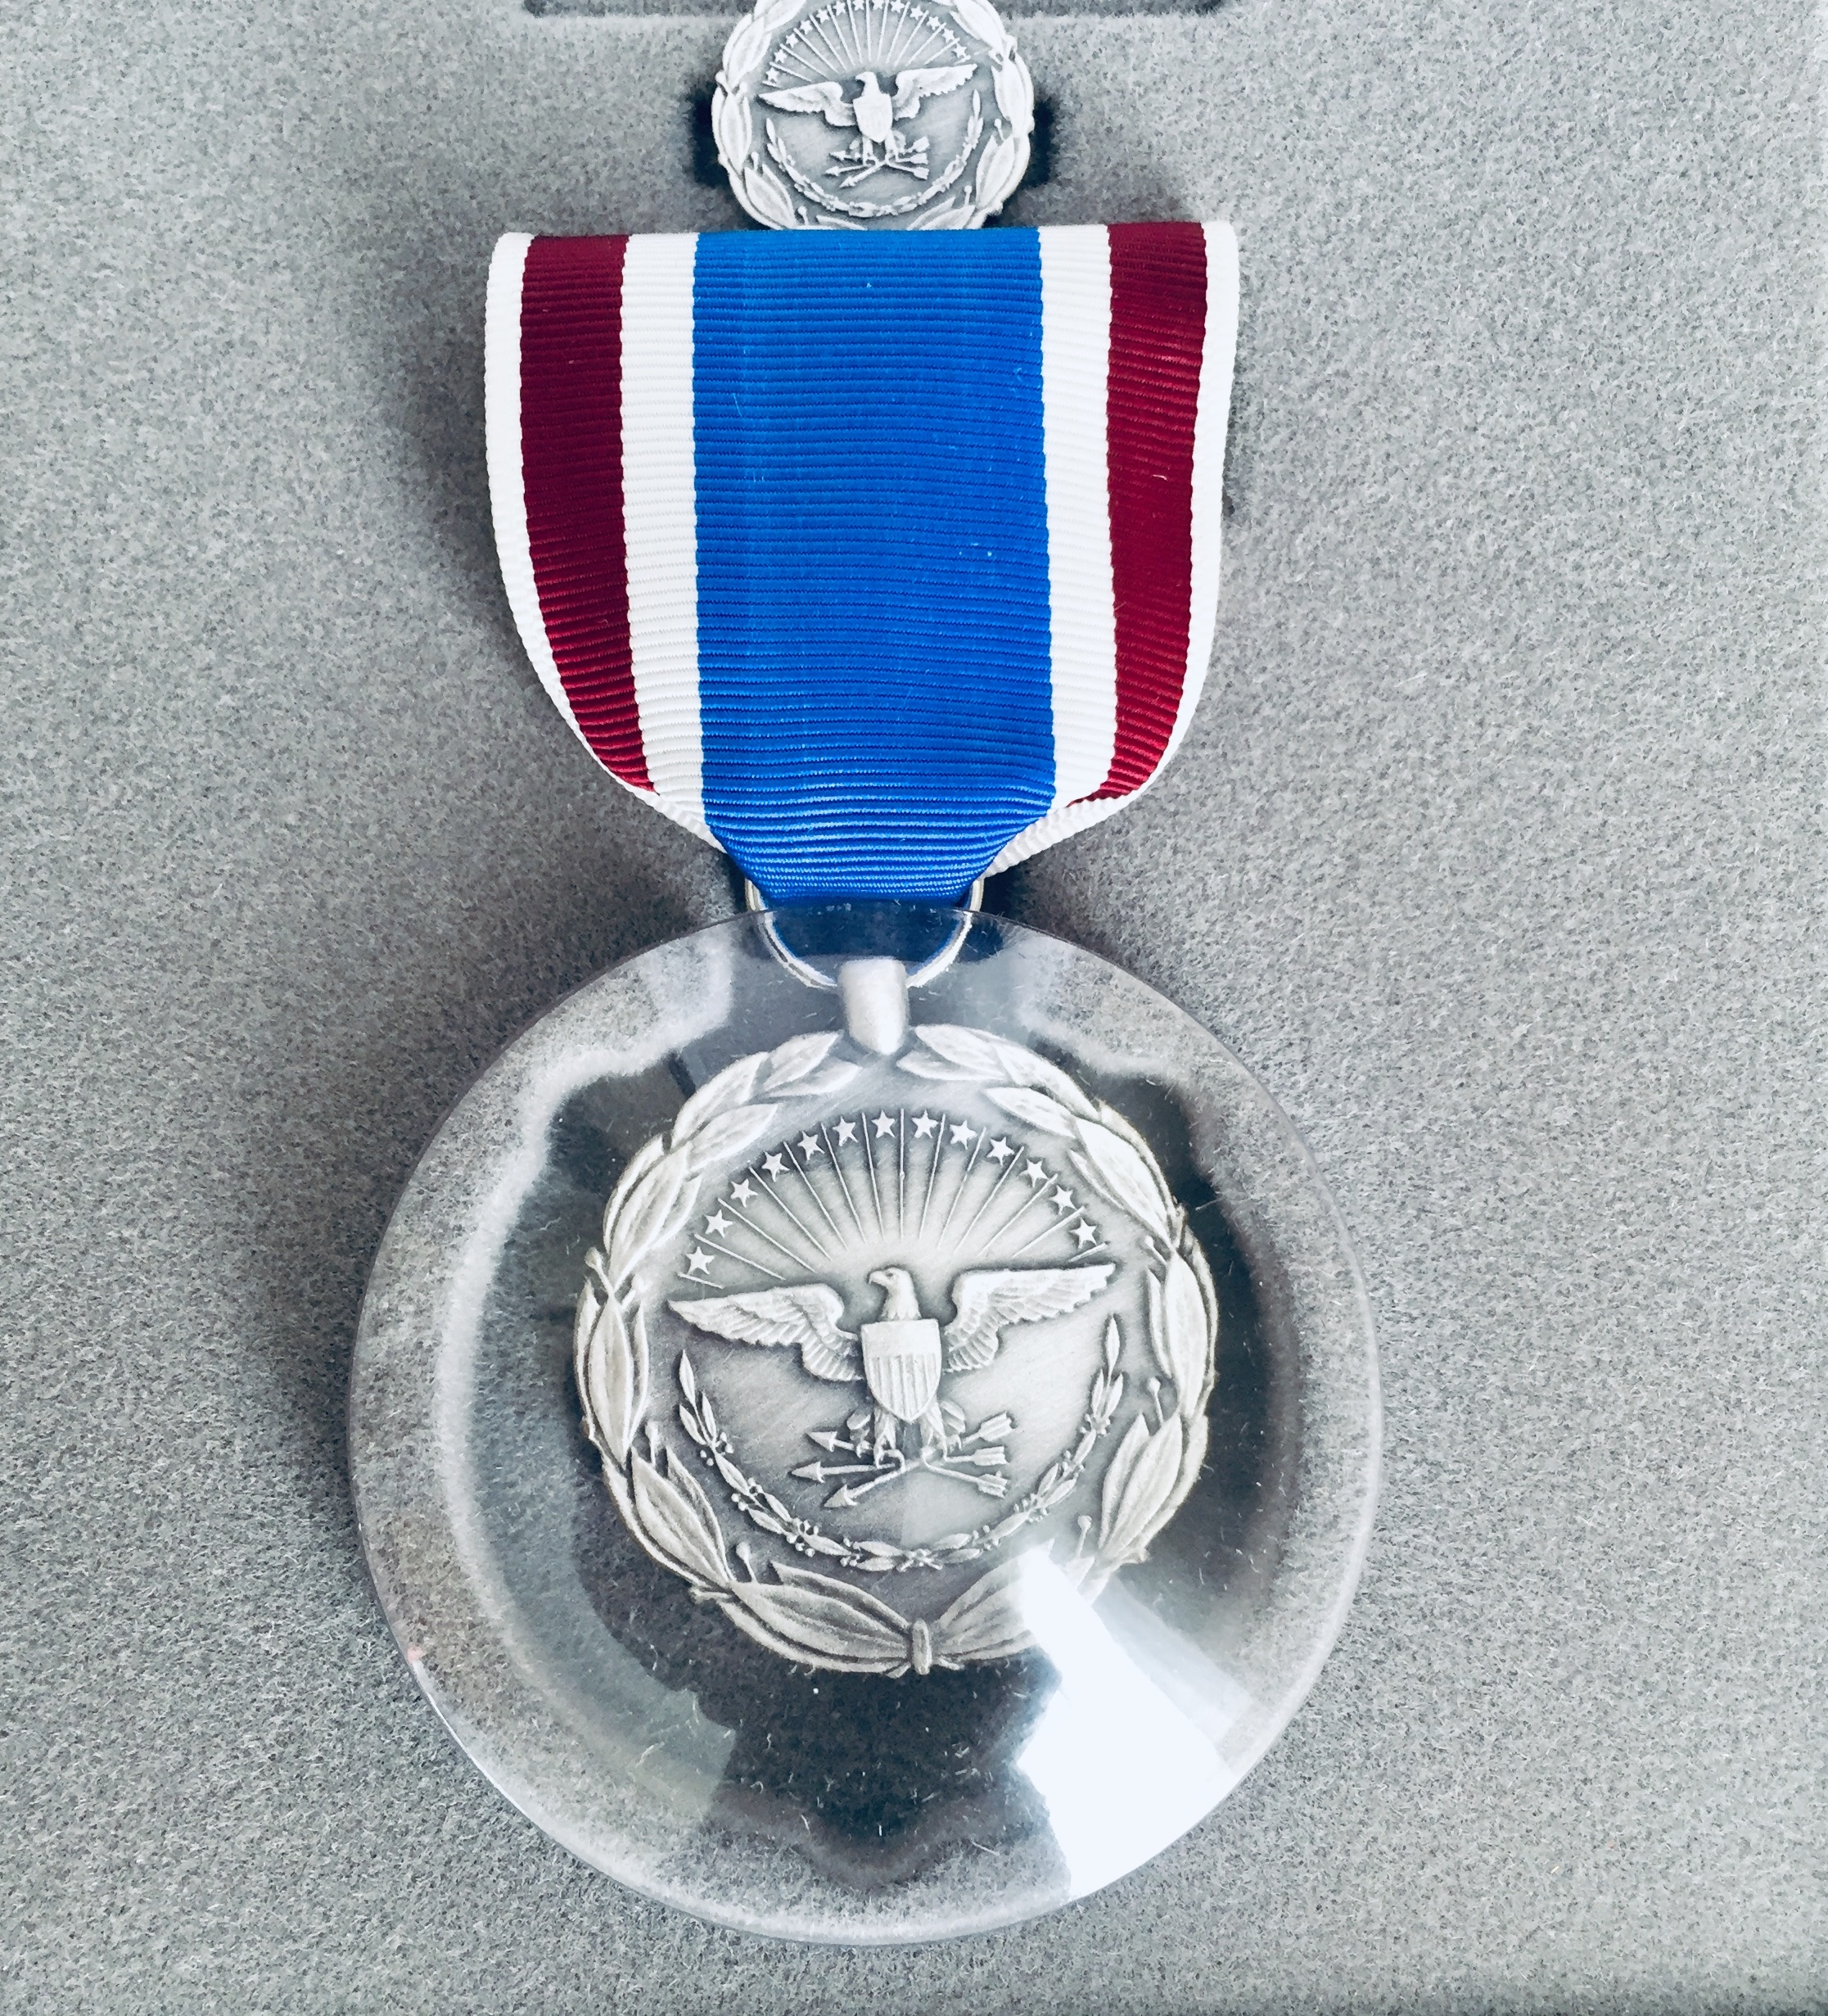 Secretary of Defense Medal for Outstanding Public Service to Michael Patrick Mulroy